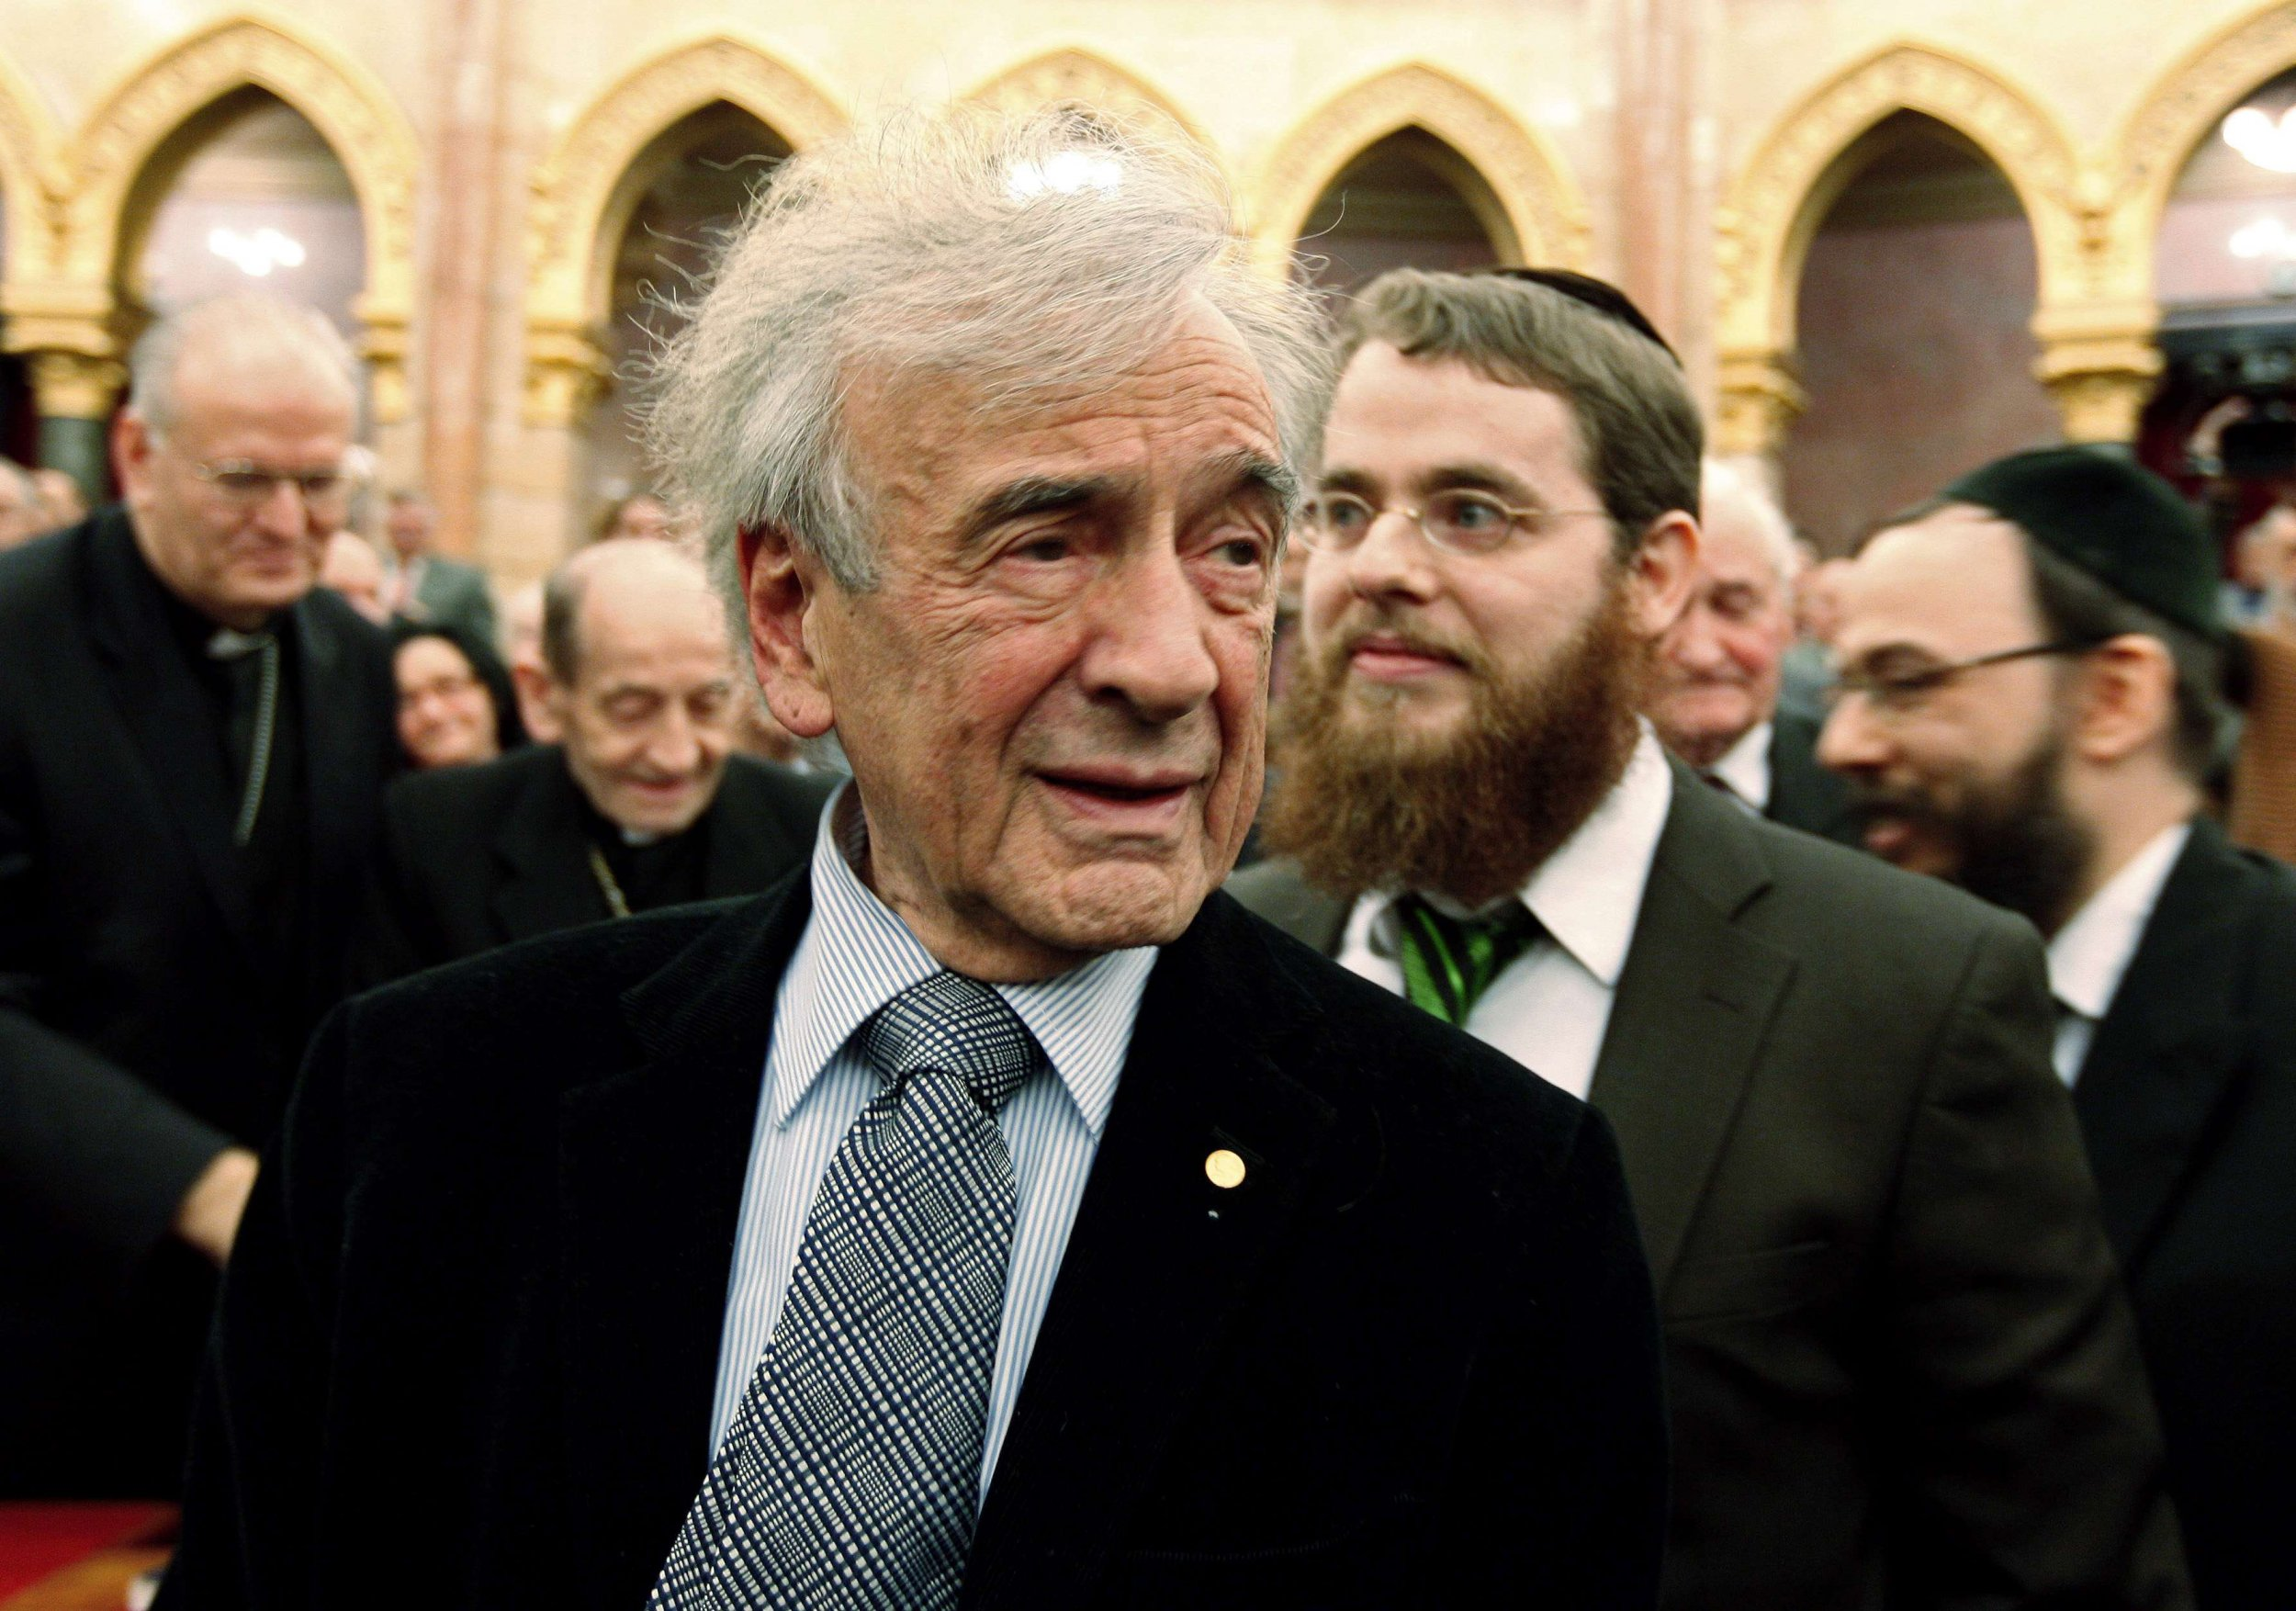 """an analysis of elie wiesels nobel peace prize acceptance speech Elie wiesel's timely nobel peace prize acceptance speech on human rights and our shared duty in ending injustice """"we must always take sides neutrality helps the oppressor, never the victim."""